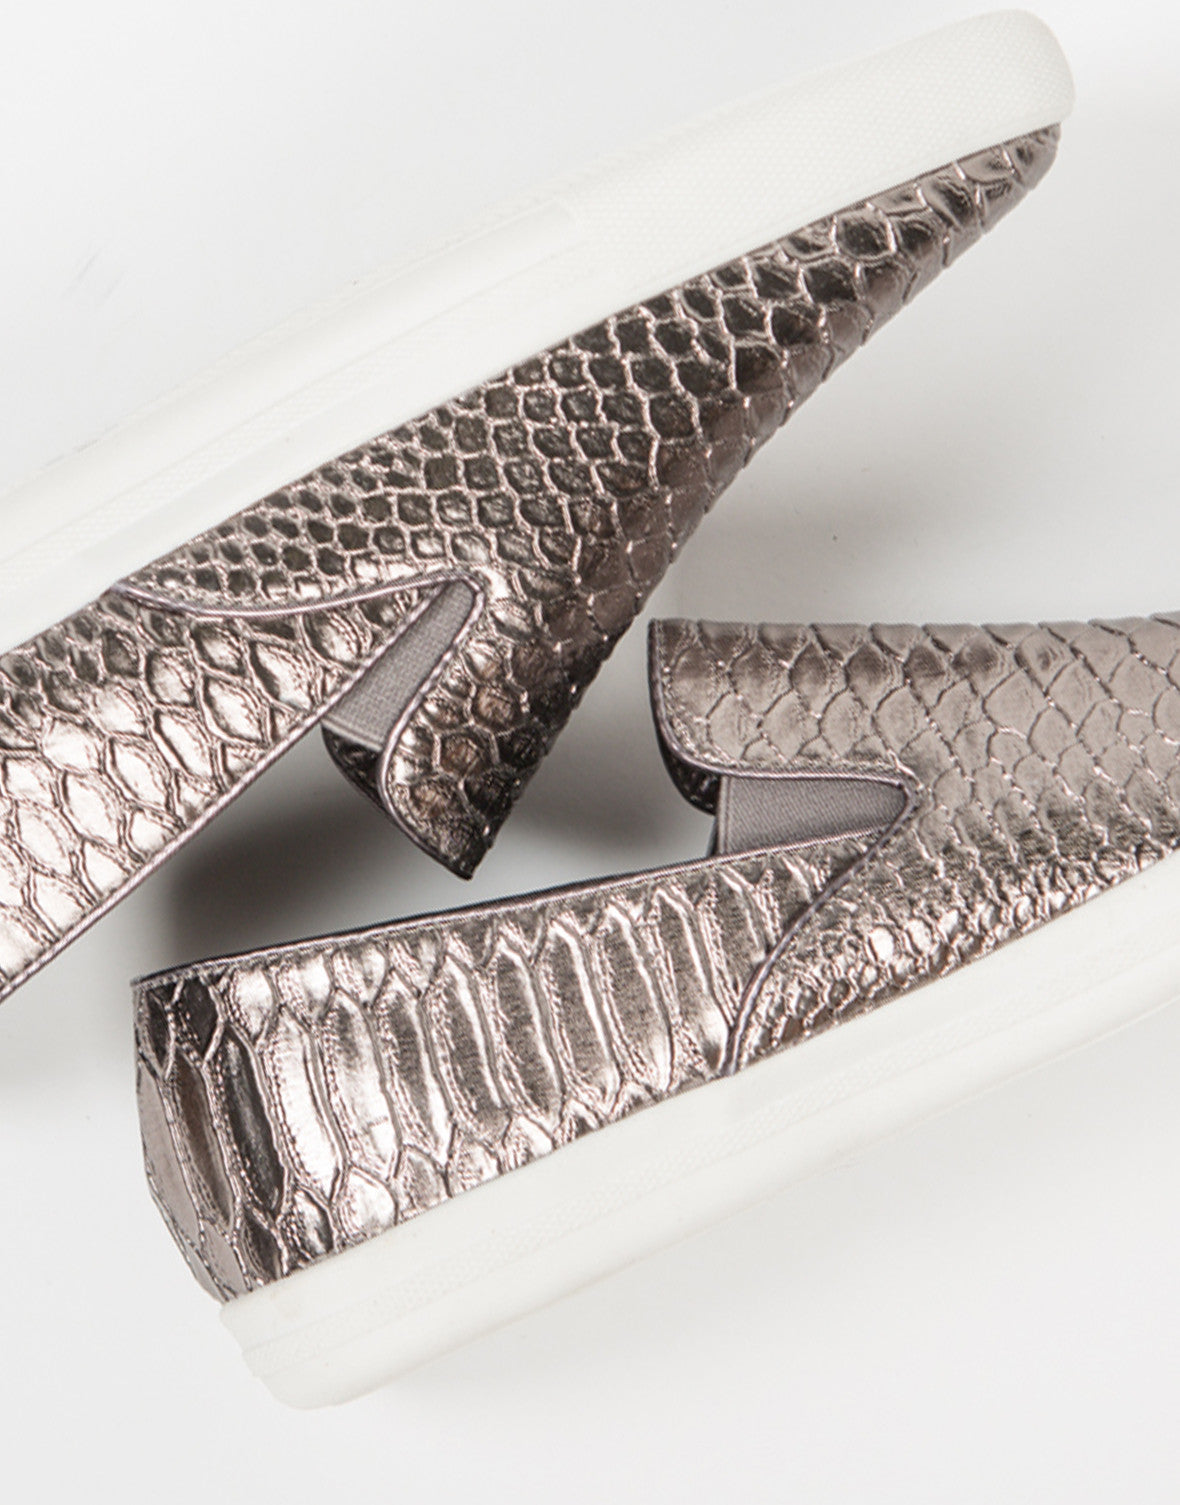 Detail of Snake Skin Slip On Sneakers